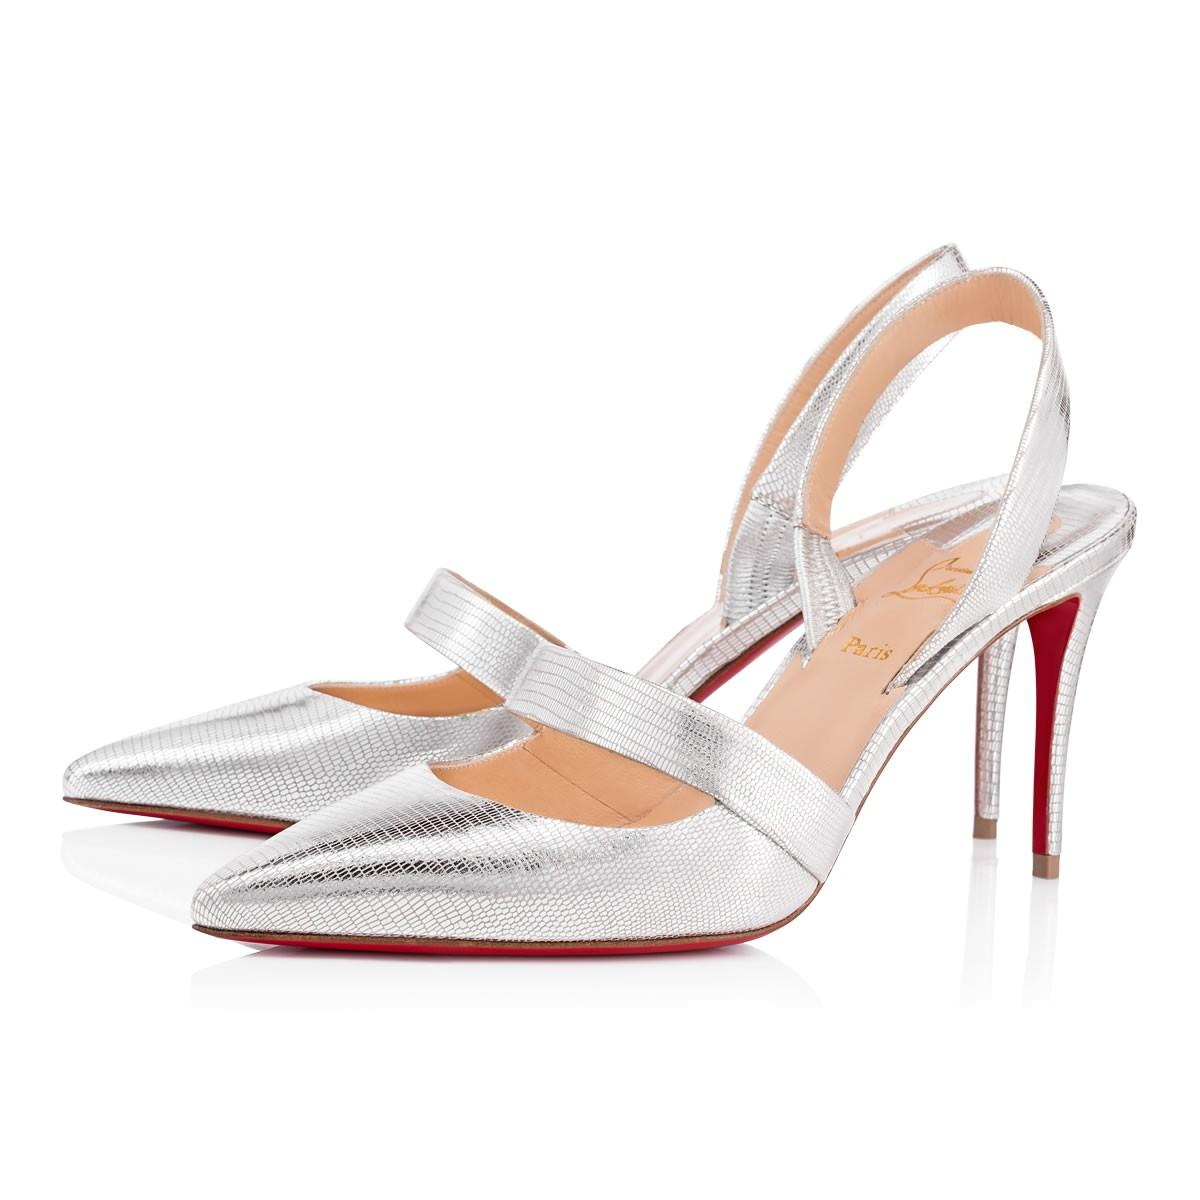 76f1ef54dc23 Christian Louboutin Actina 85 Metallic Lizard-Effect Leather Pumps In Silver